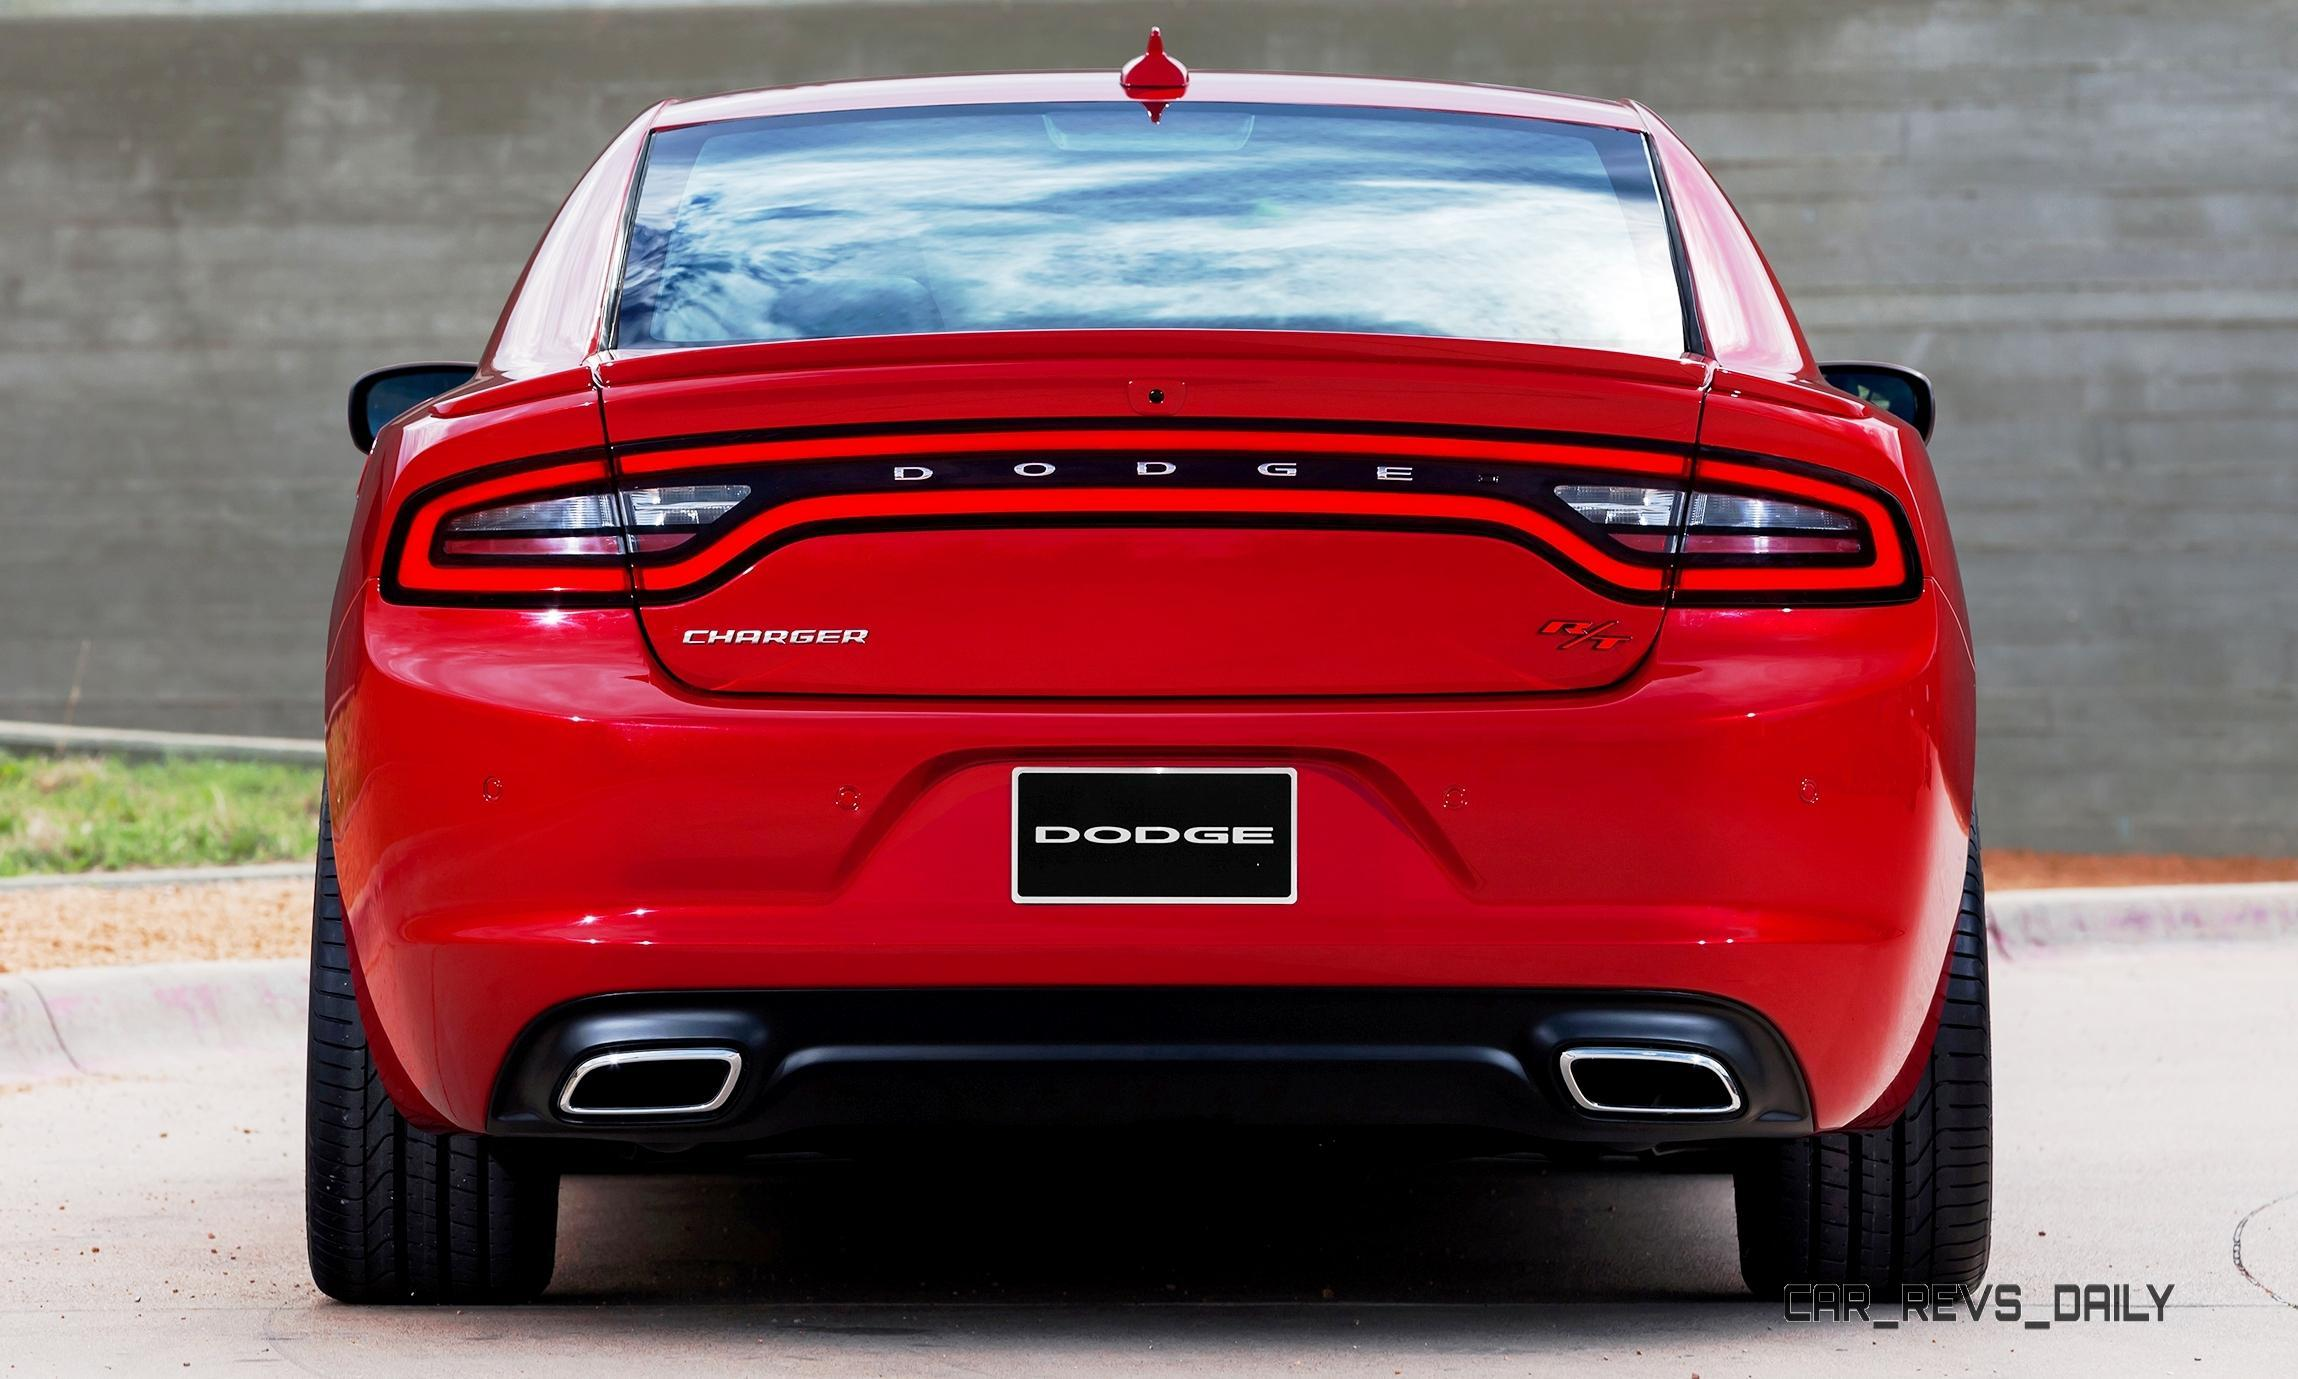 2015 Dodge Charger R/T With Painted Front Bumper Is Less ...  2015 Dodge Char...